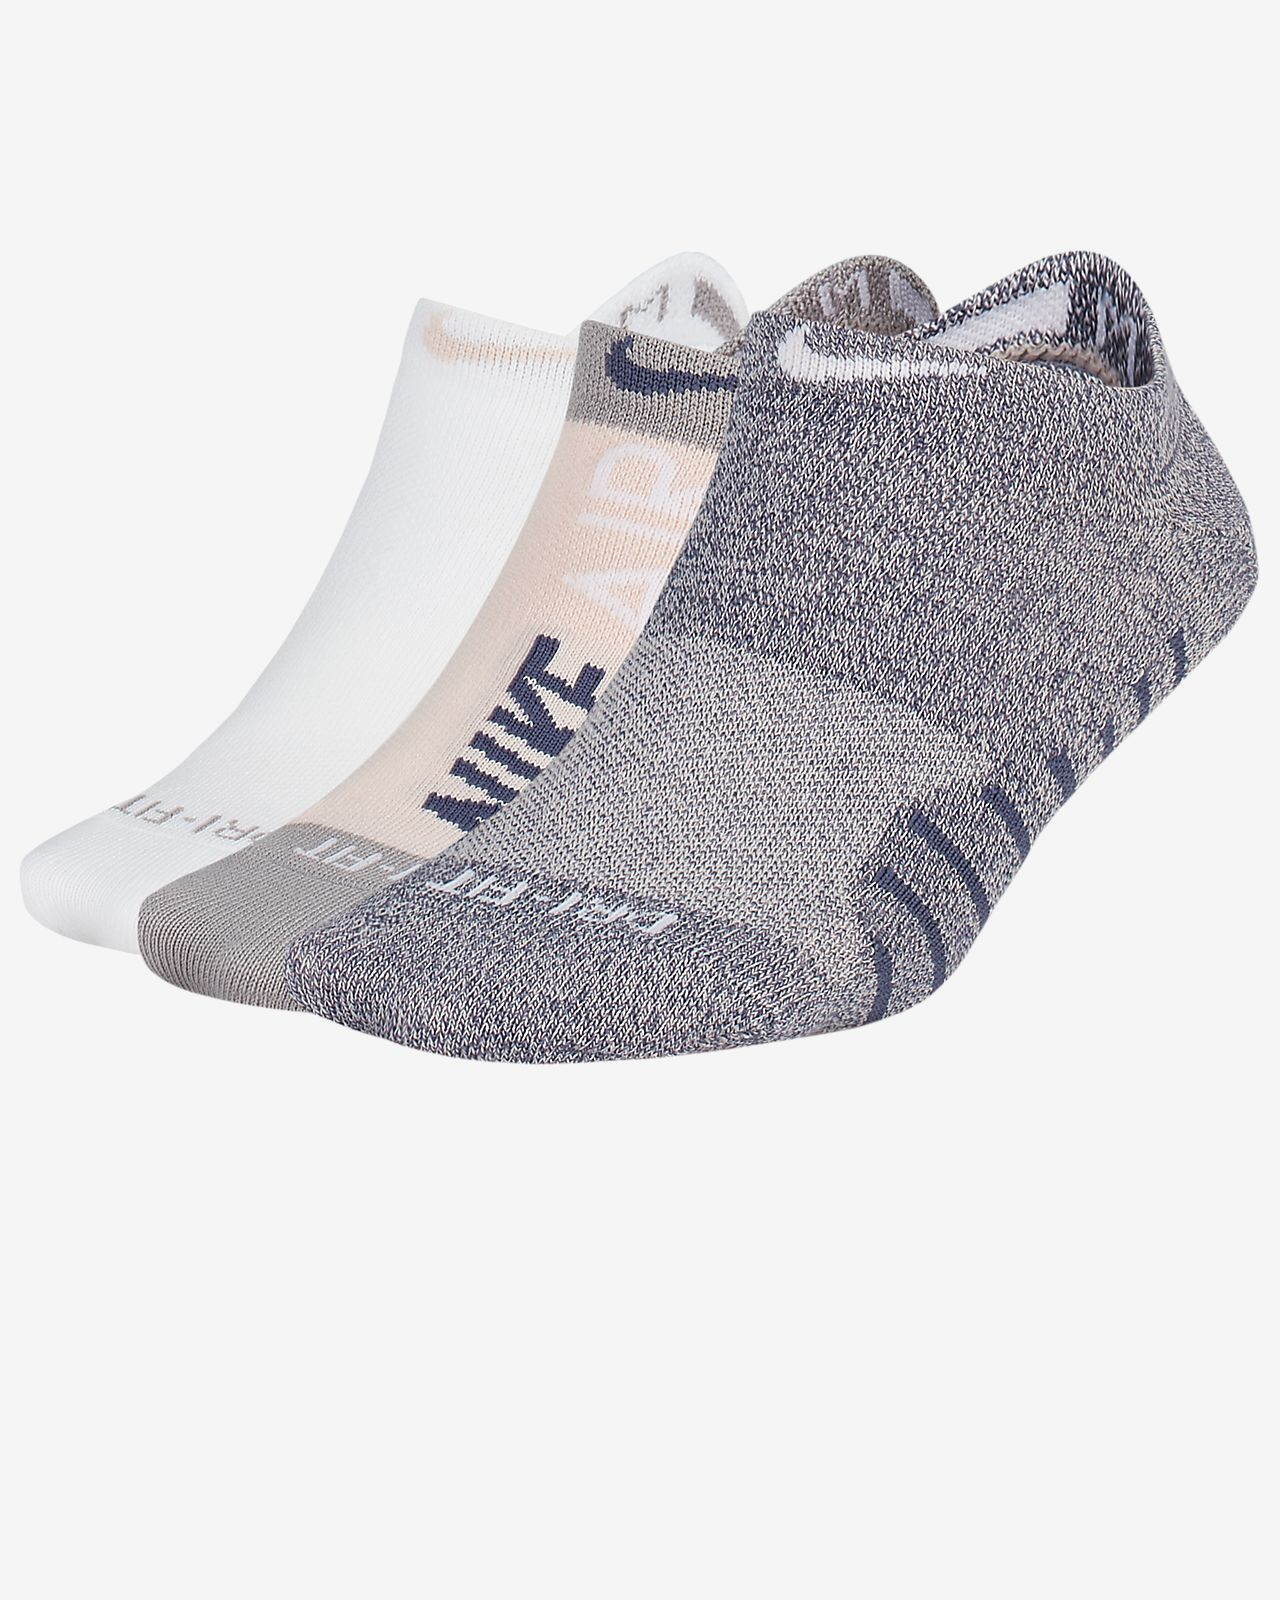 Nike Everyday Max Women's Lightweight No-Show Training Socks (3 Pairs)